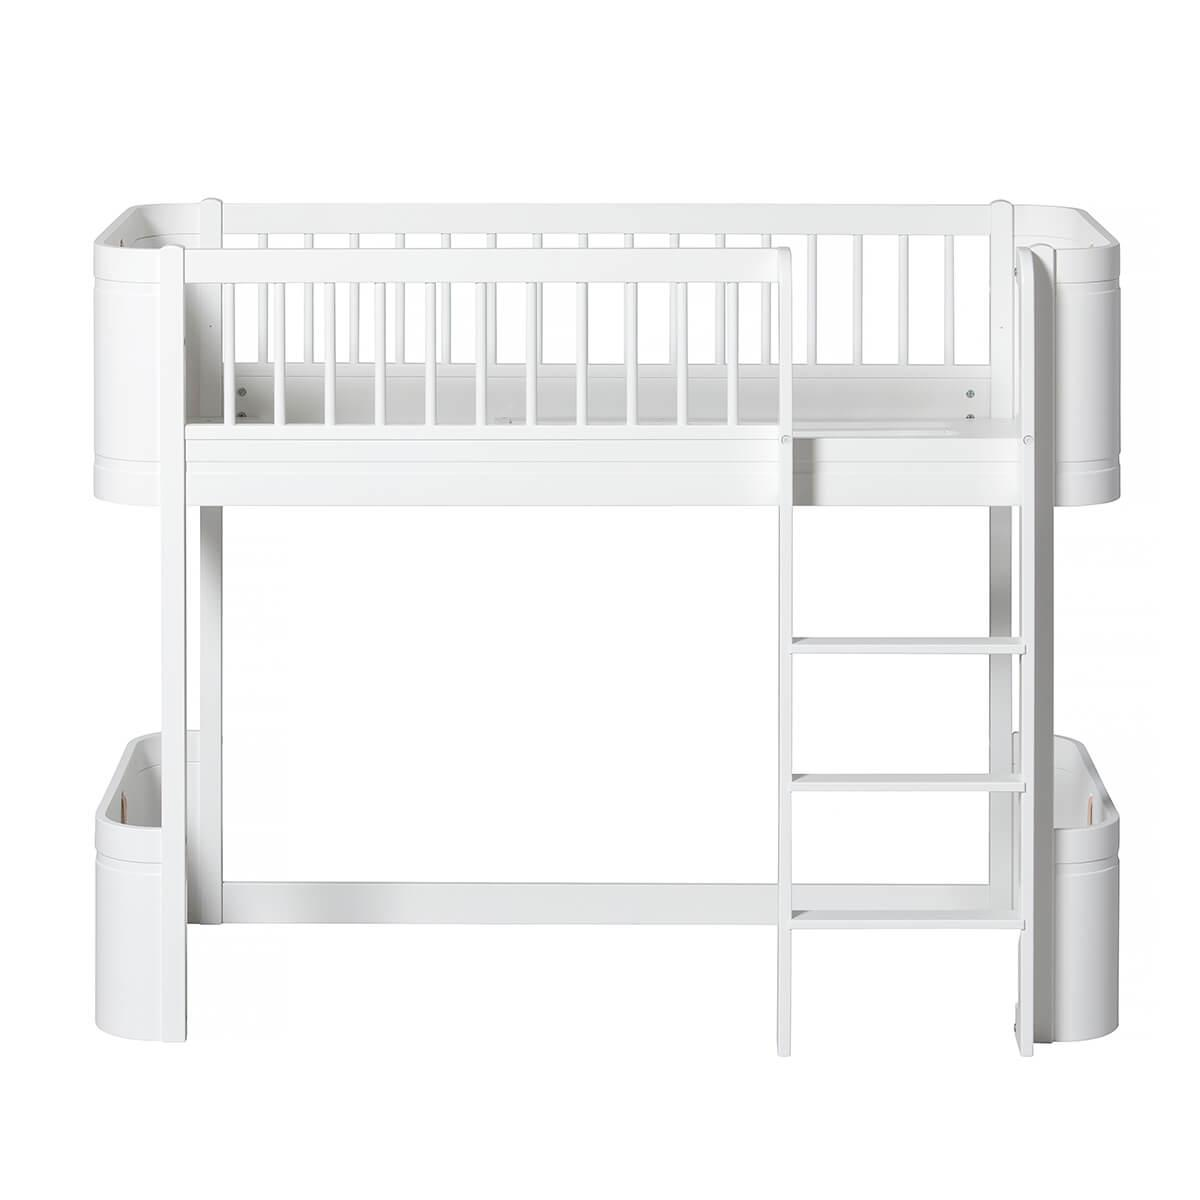 Lit évolutif mi hauteur 68x162cm MINI+ WOOD Oliver Furniture blanc